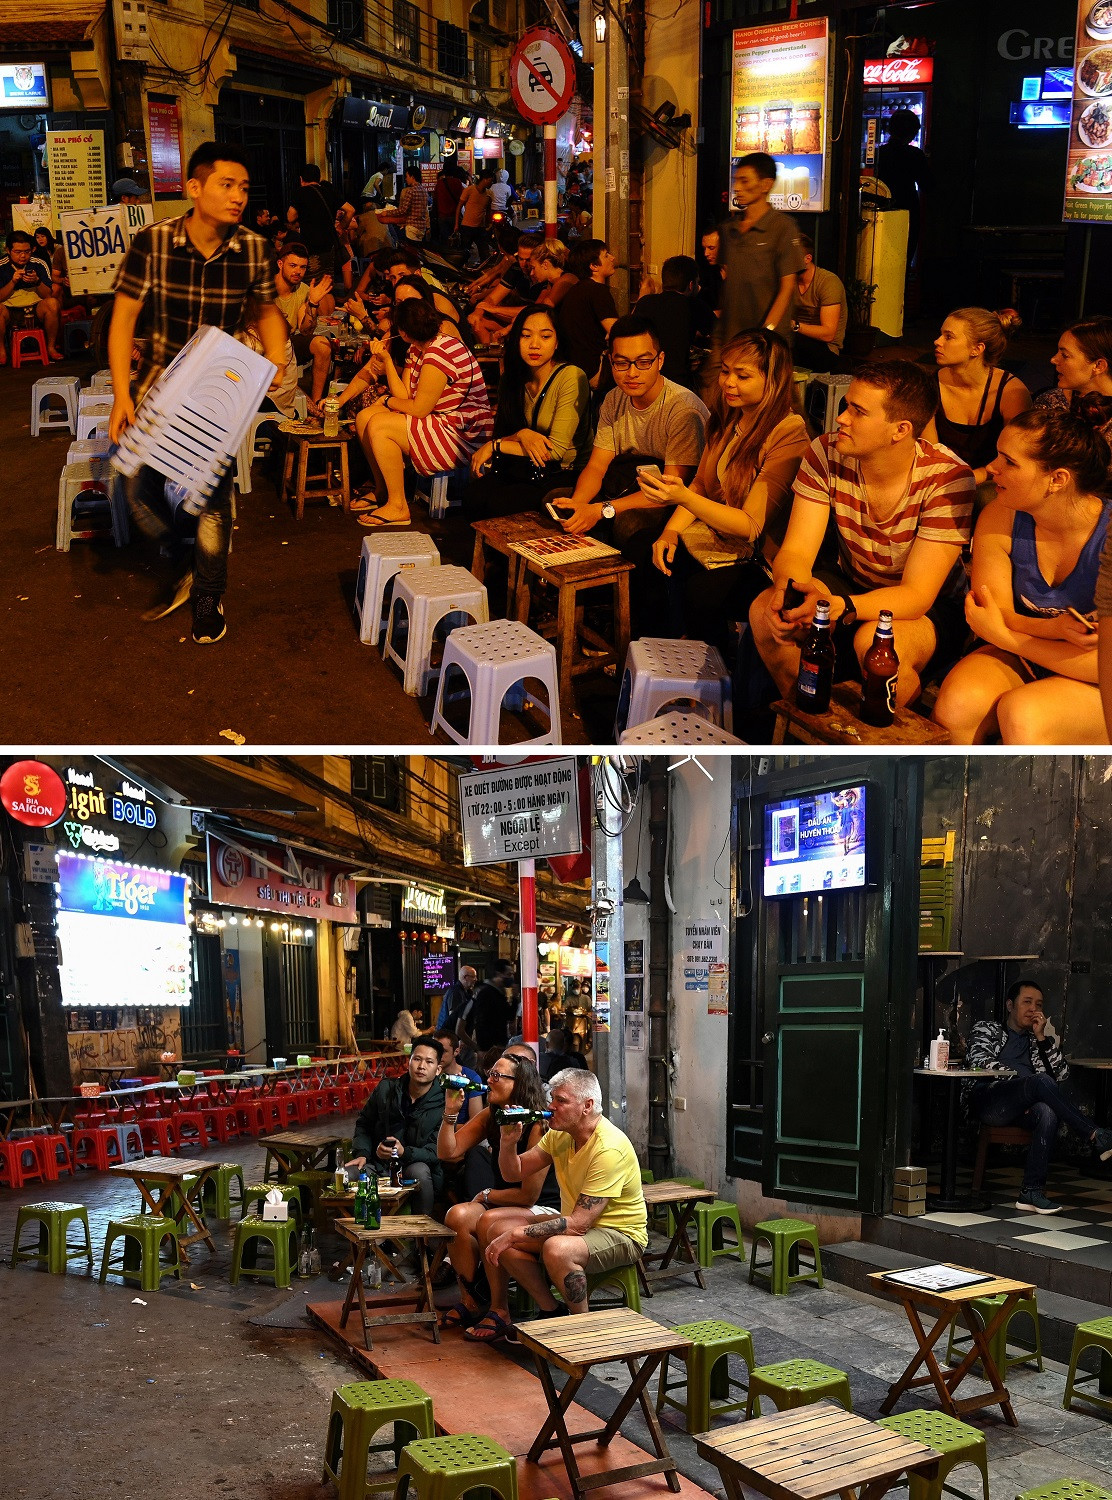 This combination photo created on March 8, 2020 shows tourists and locals enjoying drinks and food on tables set up on the pavement in the old quarter of Hanoi on November 24, 2015 (top) and people drinking in the same area in Hanoi on March 7, 2020.